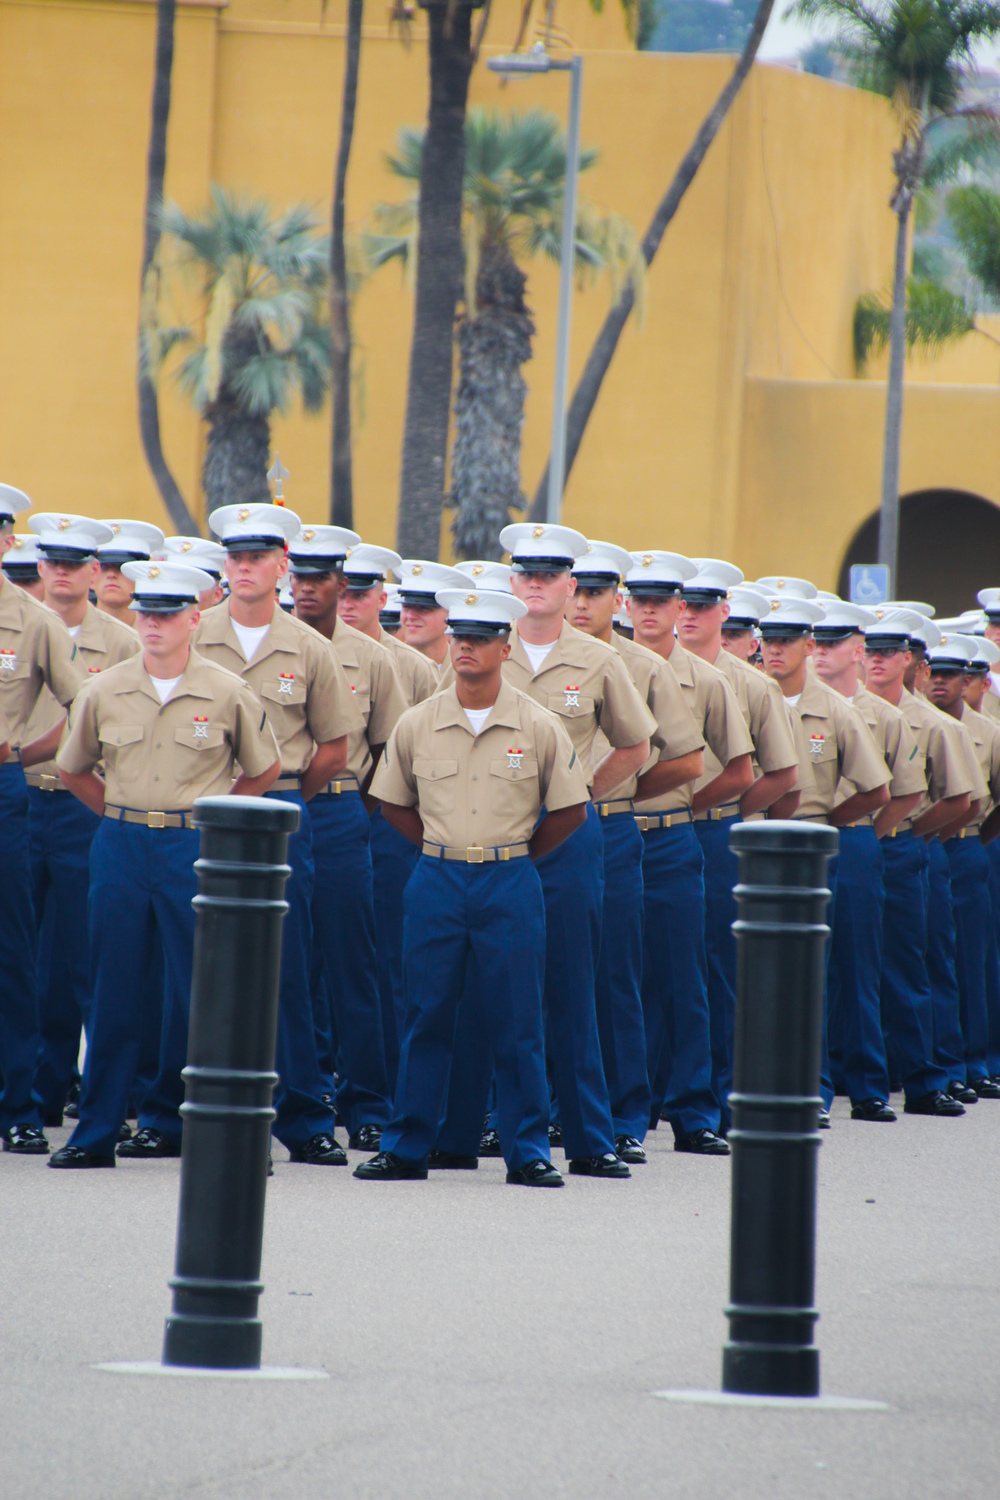 Marine Graduation Ceremony at MCRD